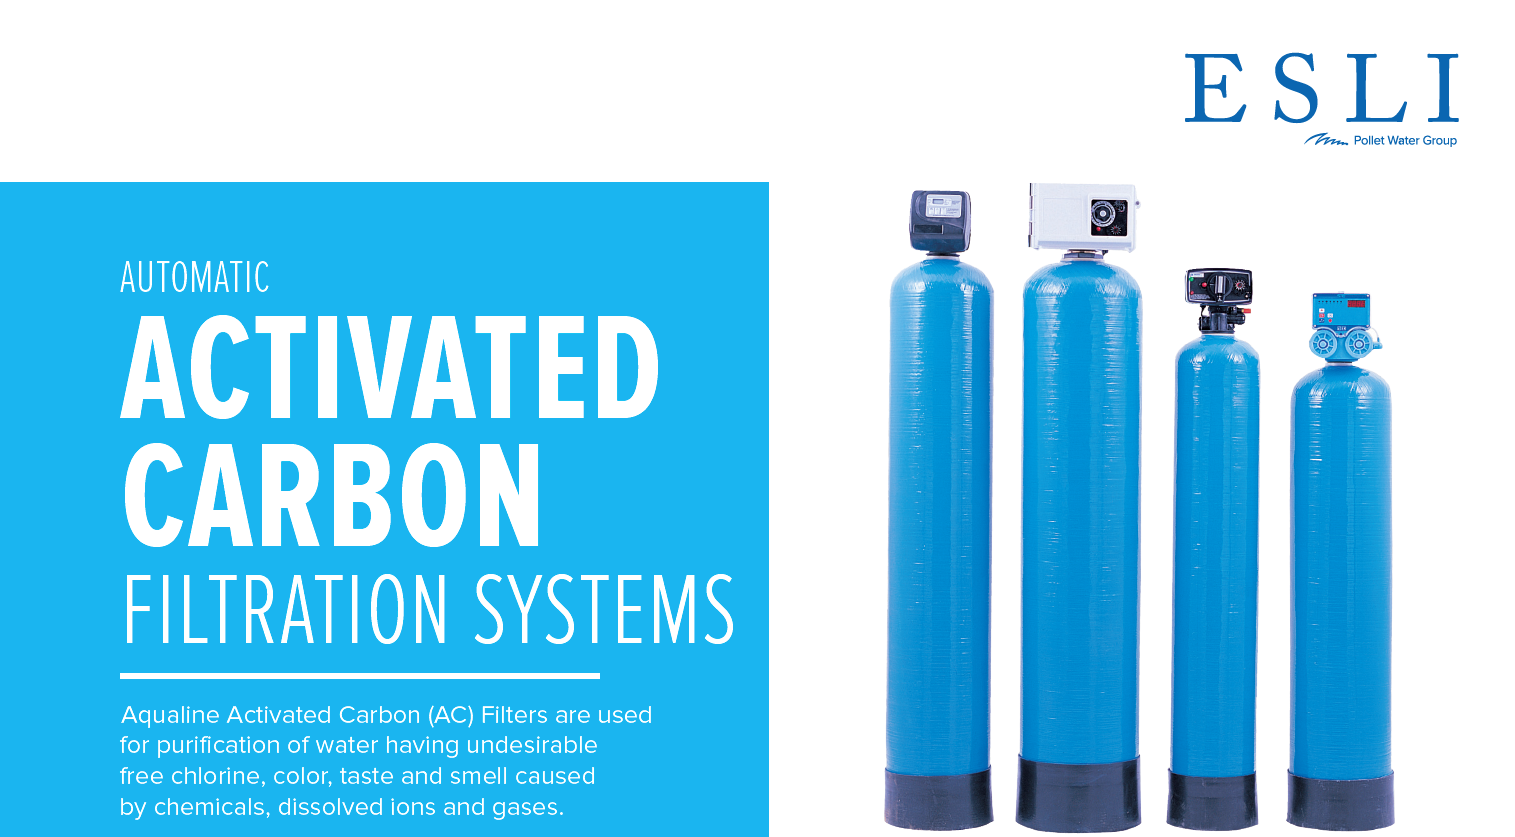 Automatic activated carbon filtration systems